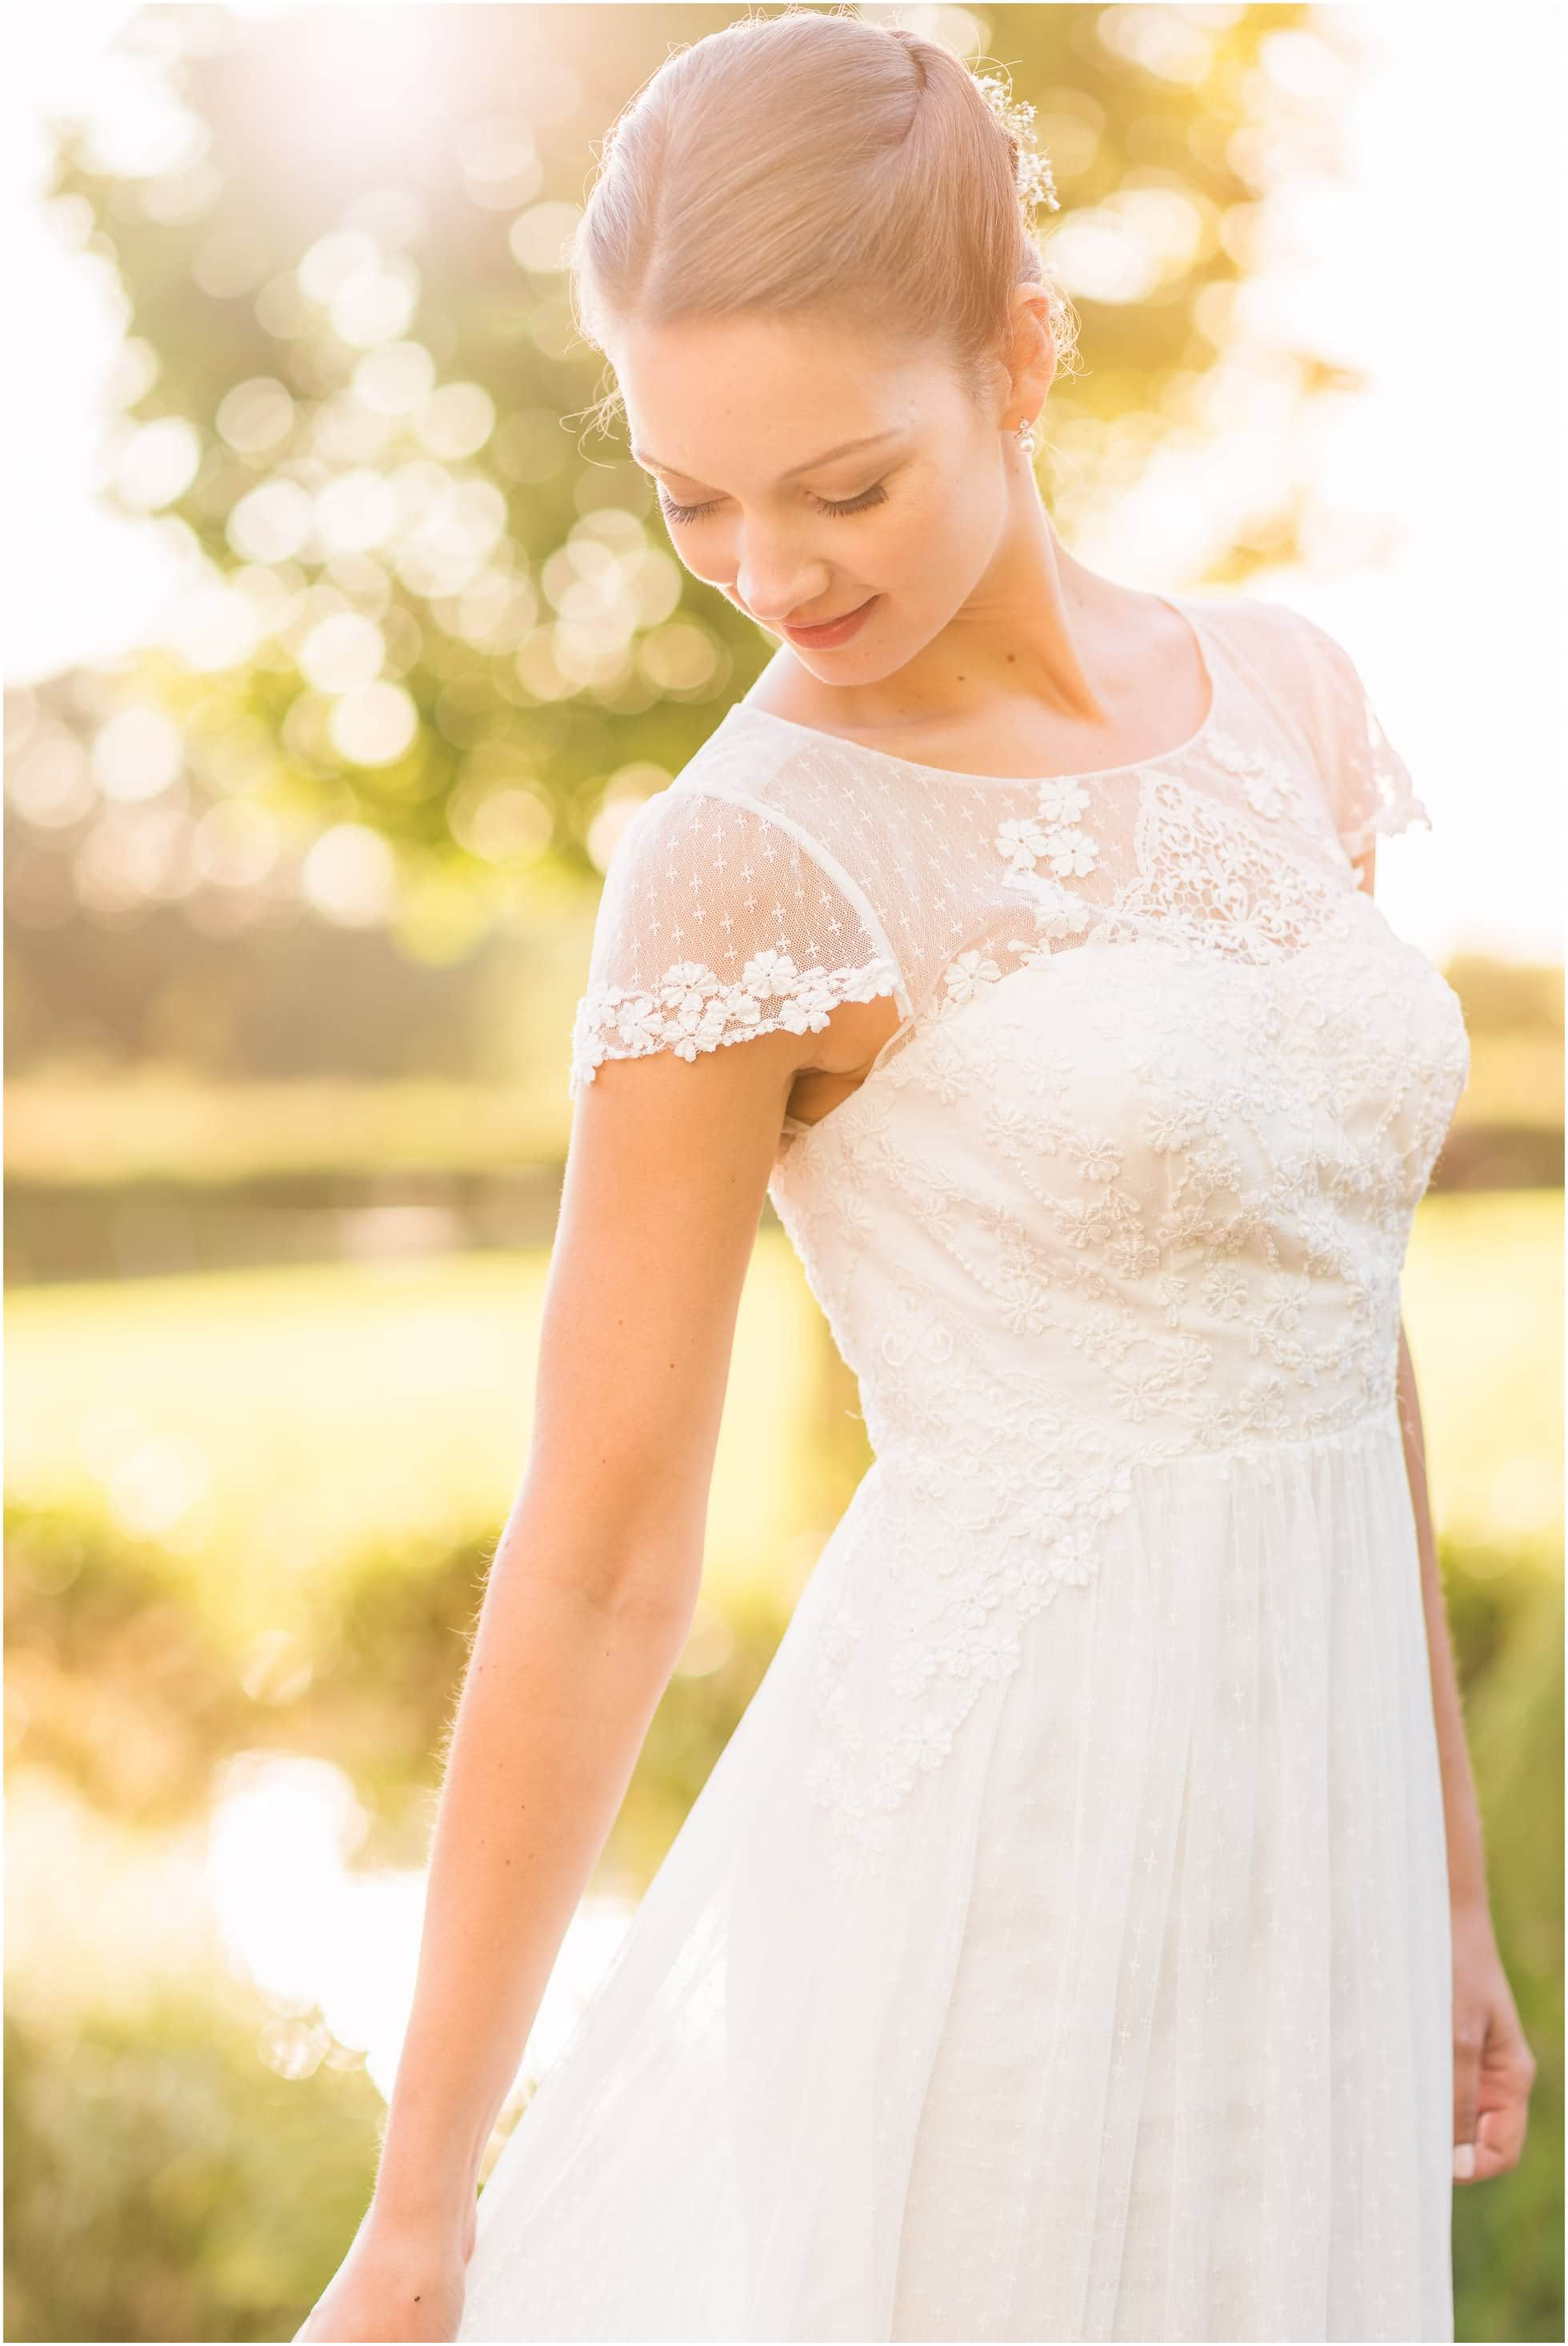 Gorgeous brides dress at sunset - wedding photography golden moment!